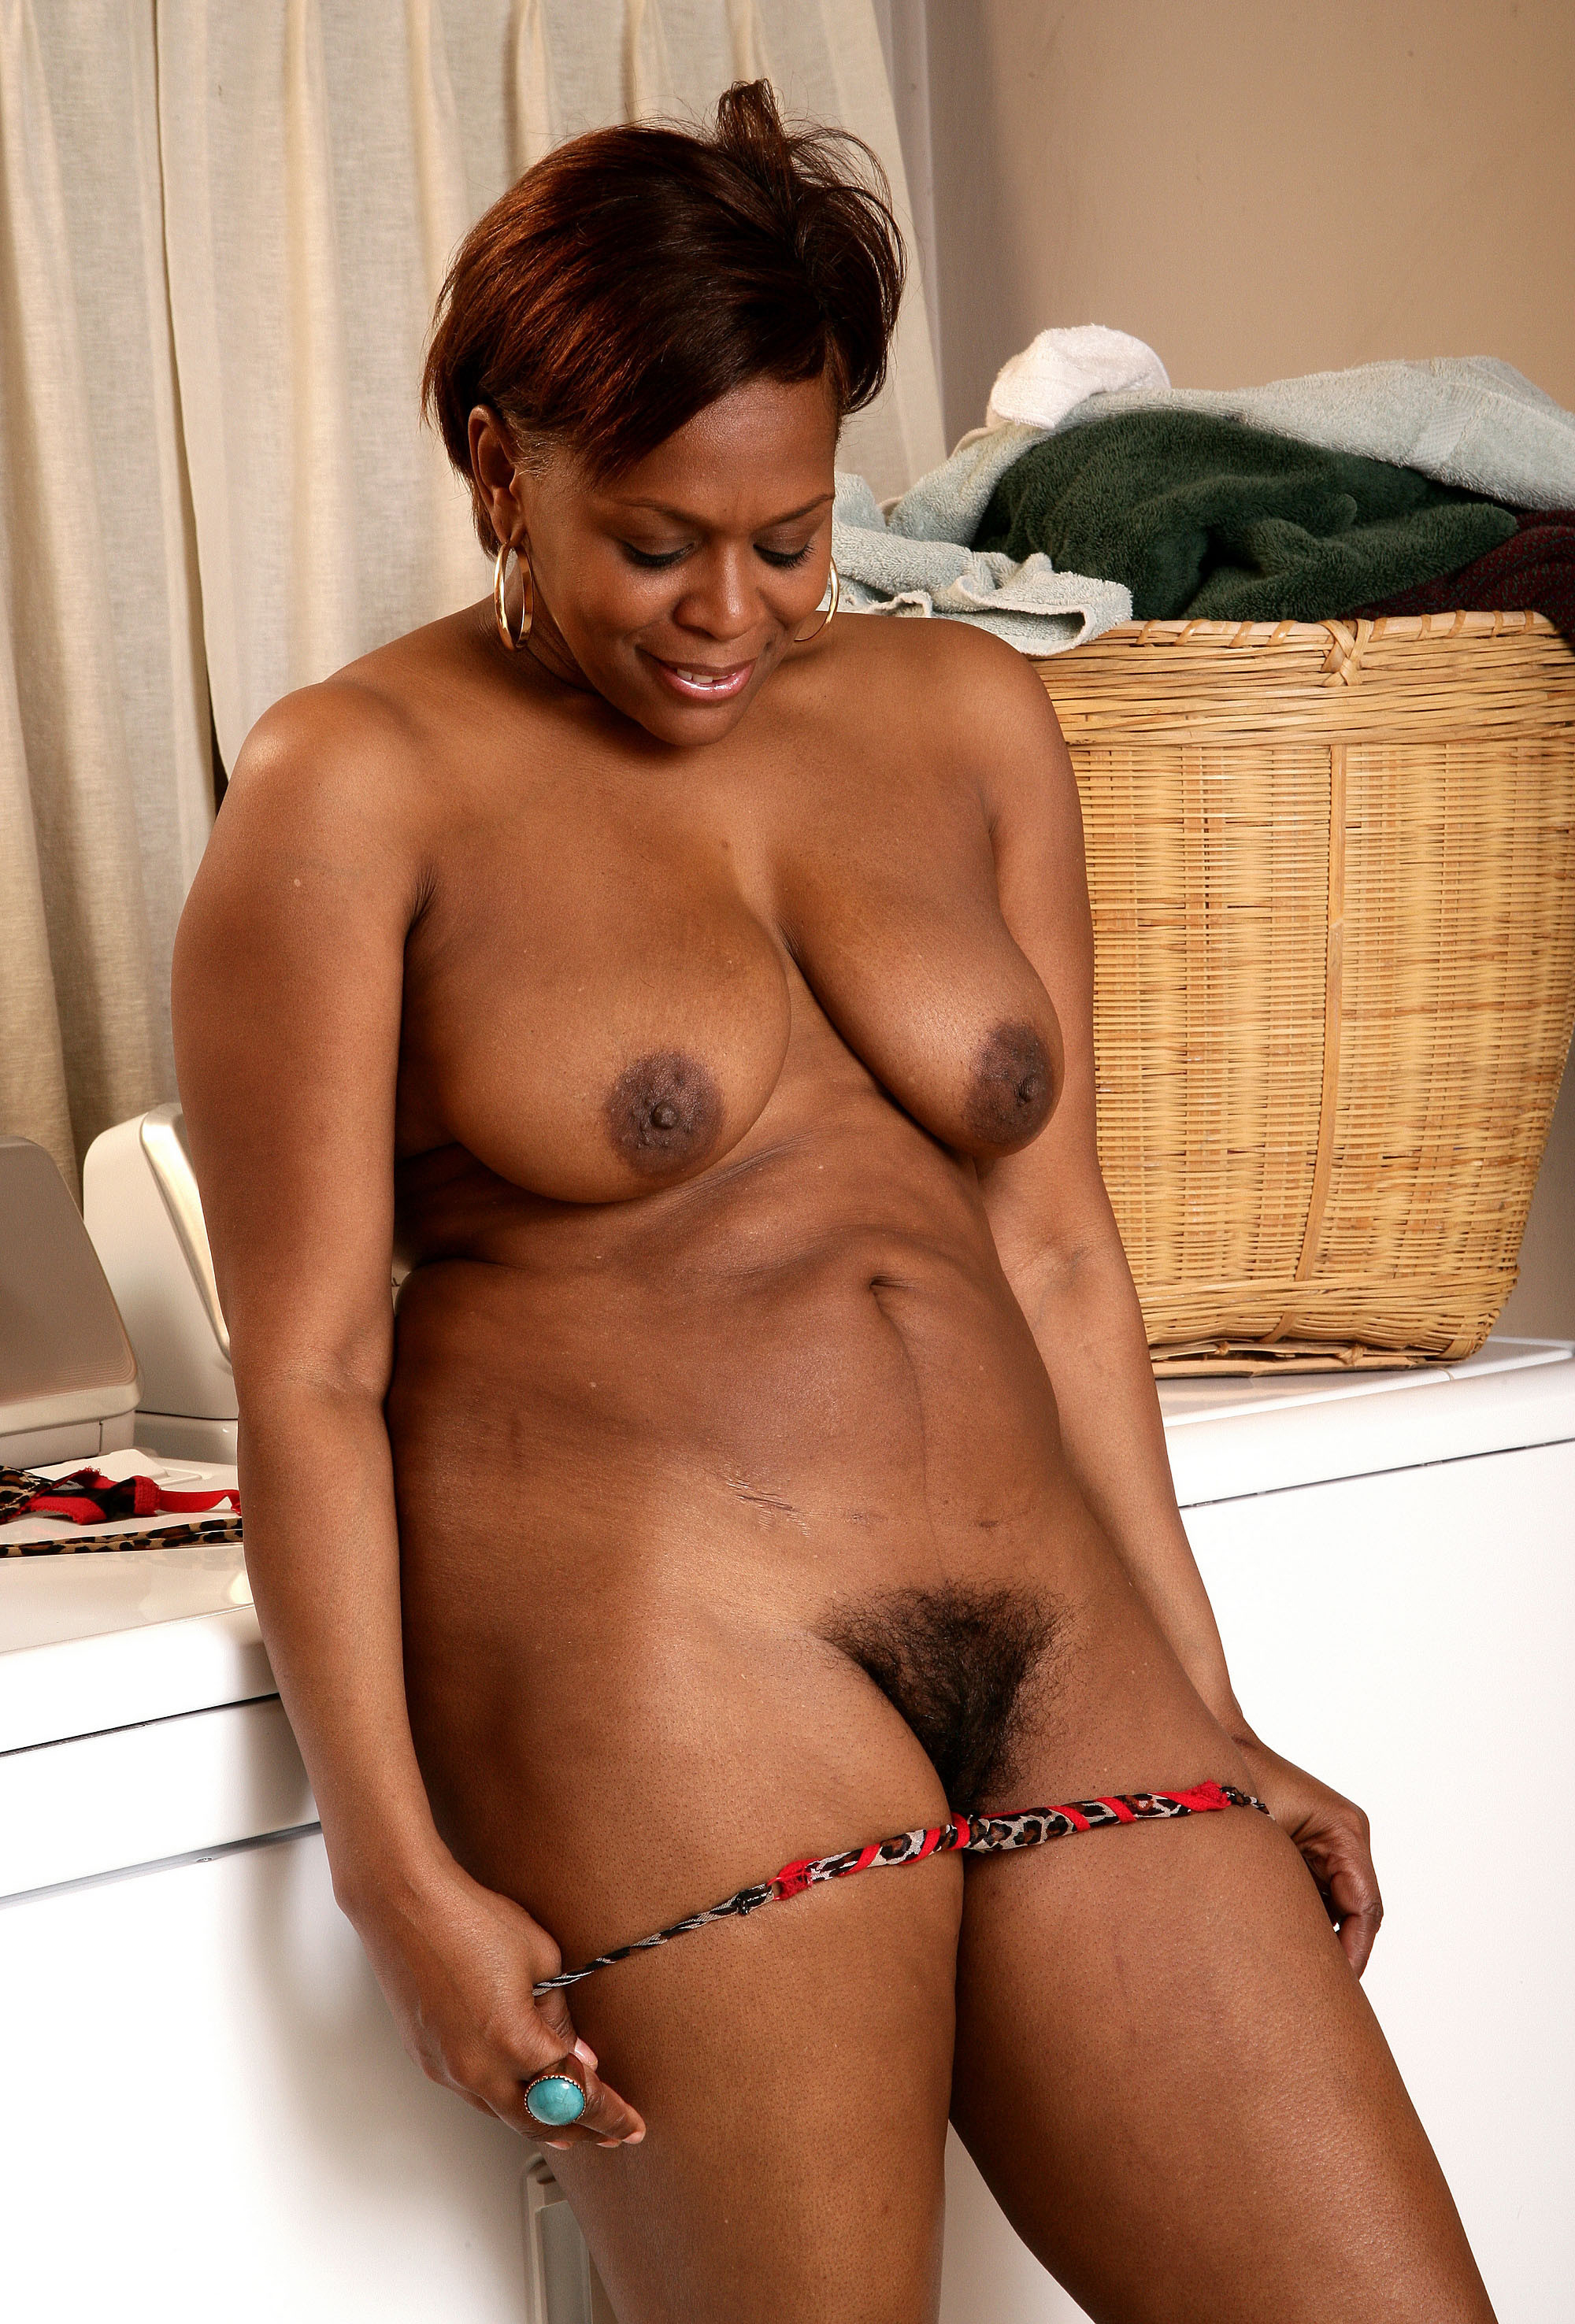 Covering an ebony mature face with my cum 9